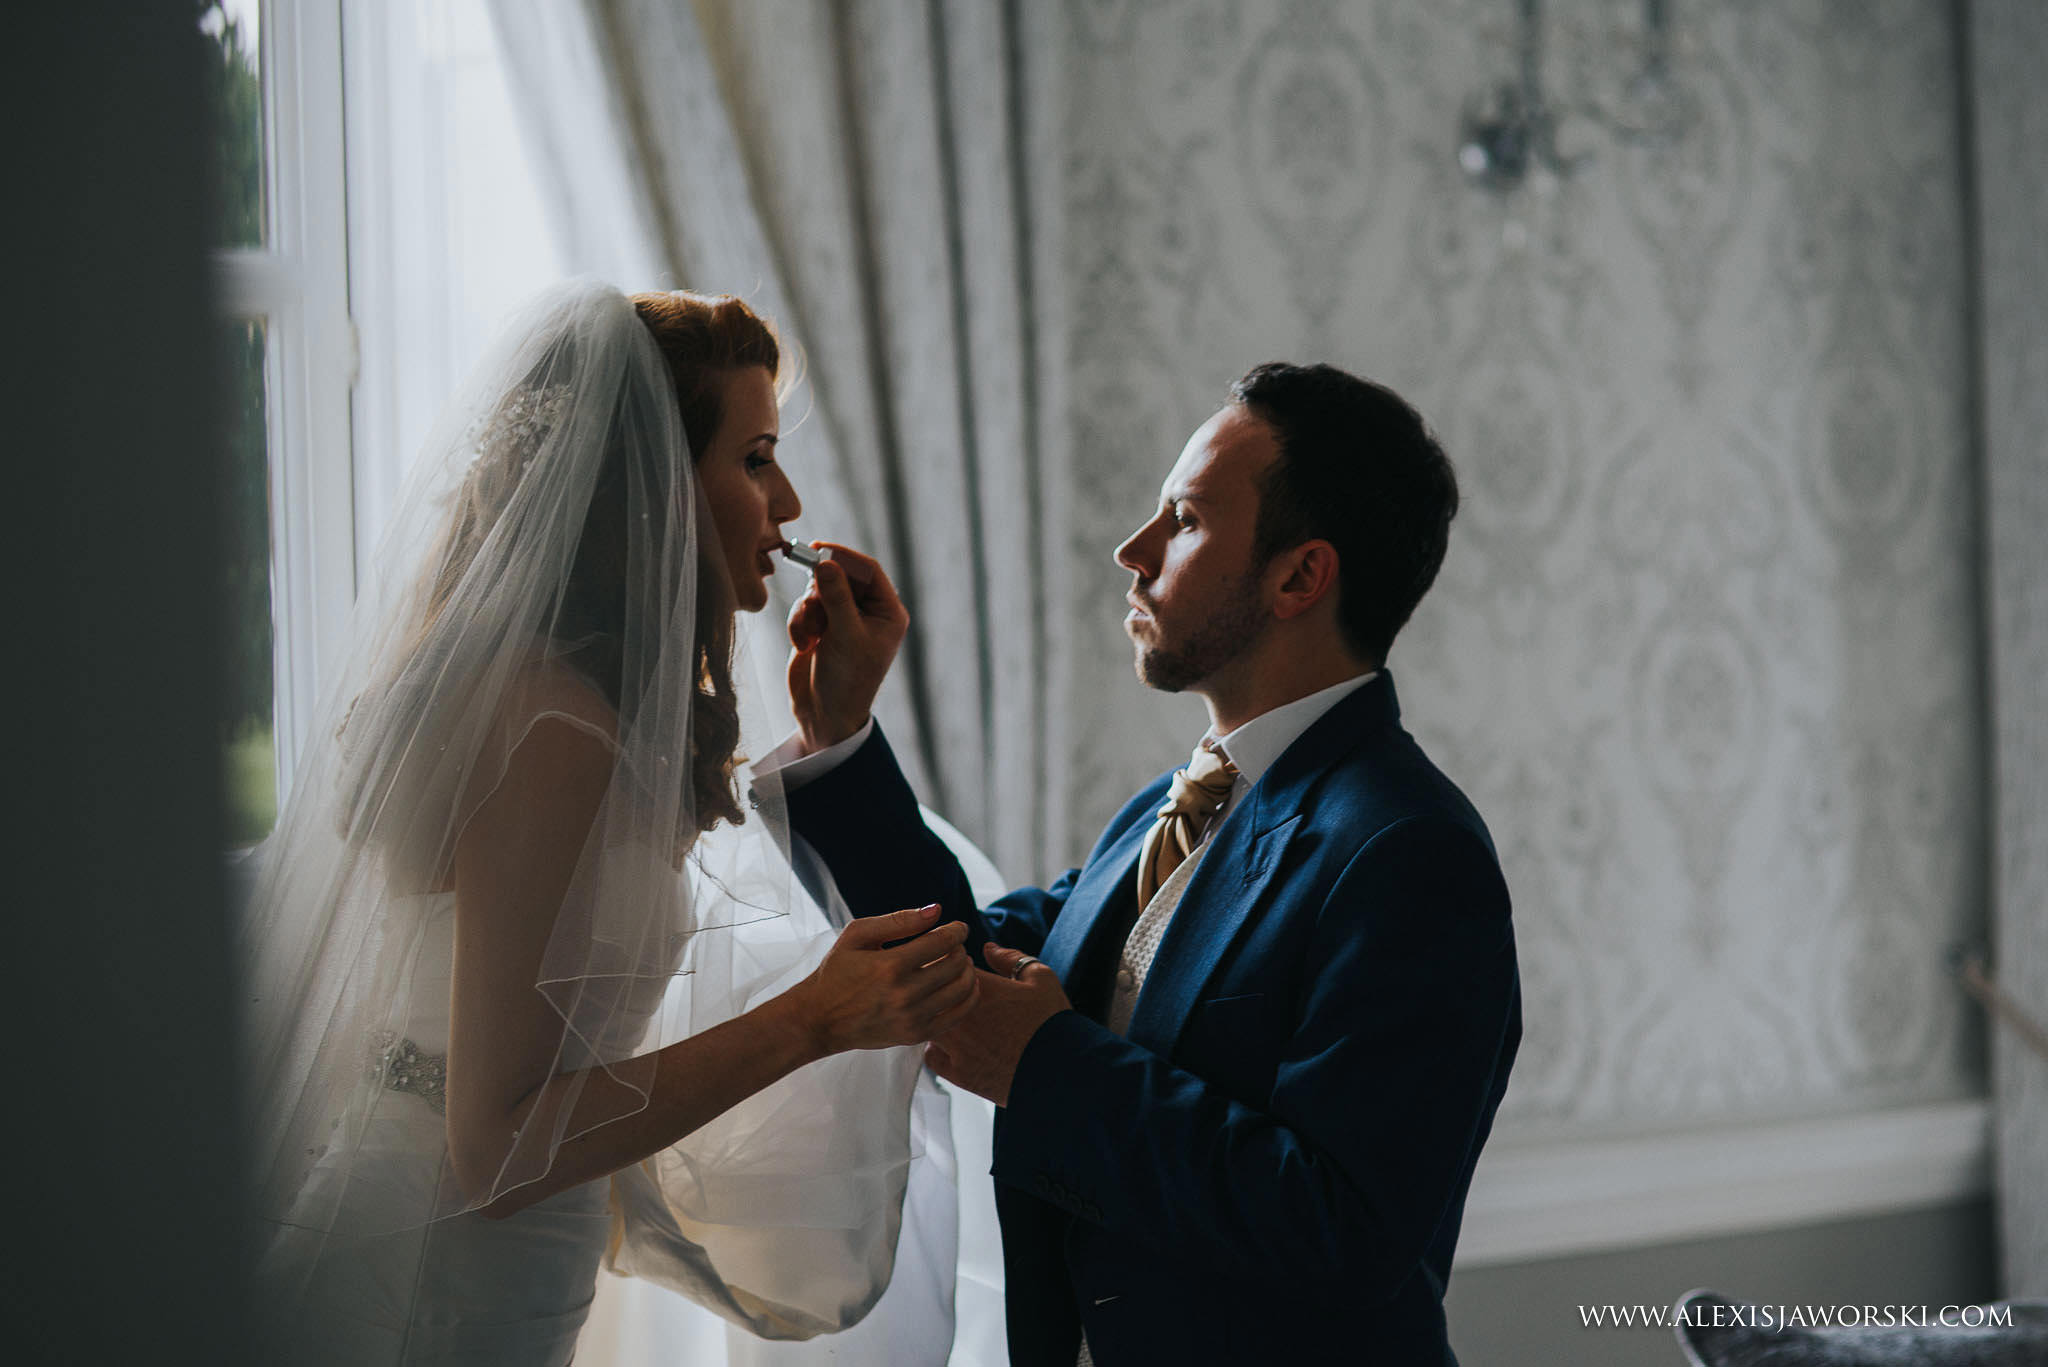 Man of honor helping bride with make up